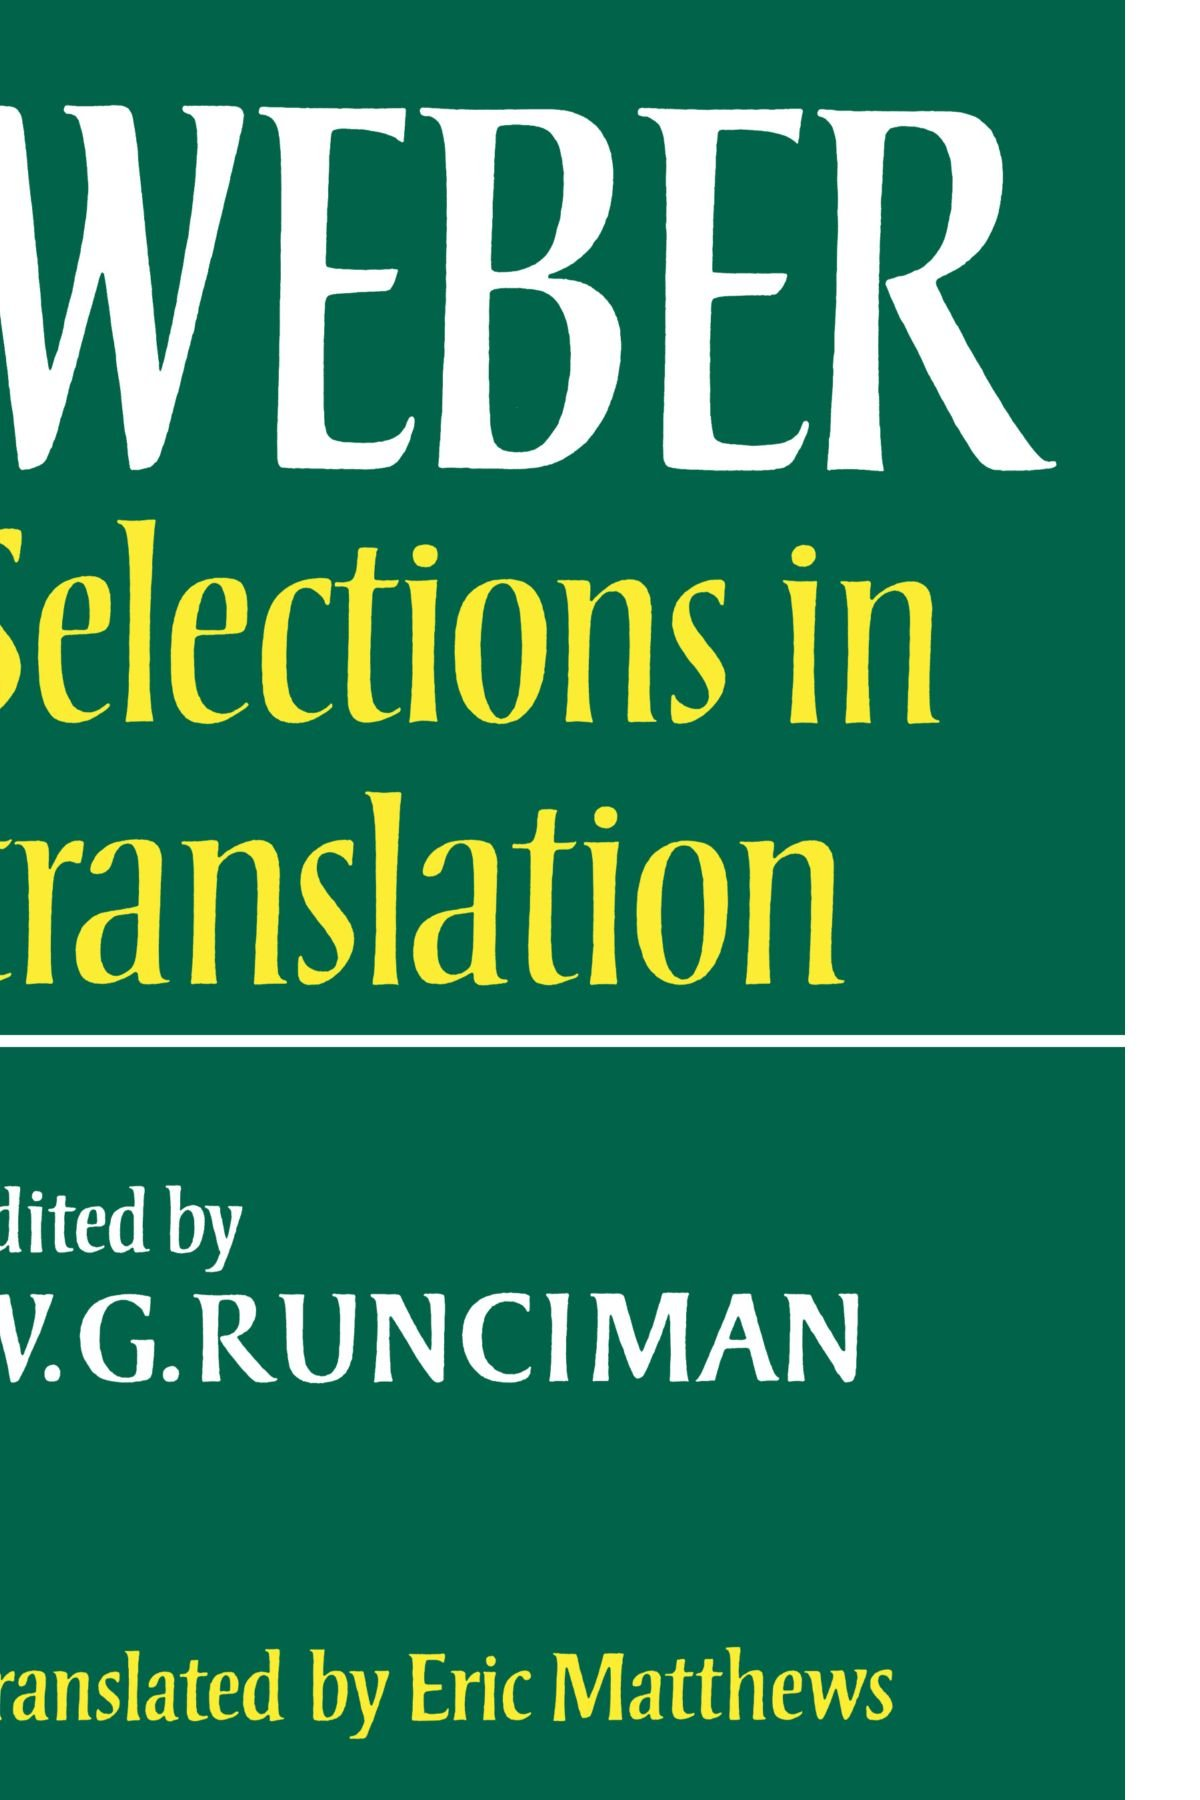 Max Weber: Selections in Translation: Amazon.co.uk: Max Weber, W. G.  Runciman, E. Matthews: 9780521292689: Books